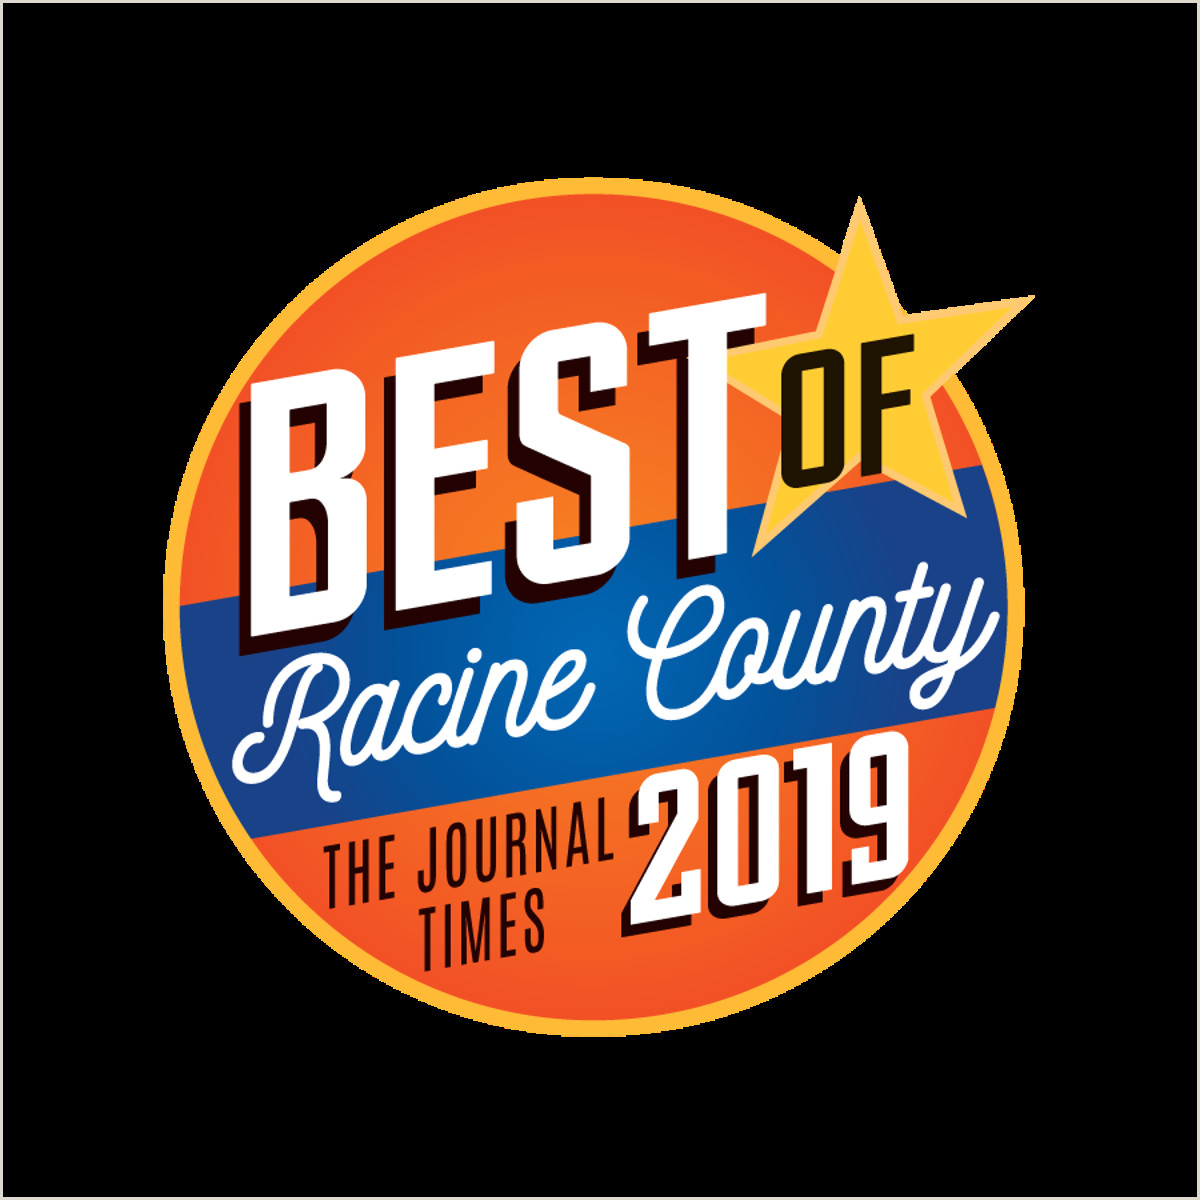 Best Business Cards For Gas Vote Now Through Midnight Tonight For The Best Of Racine